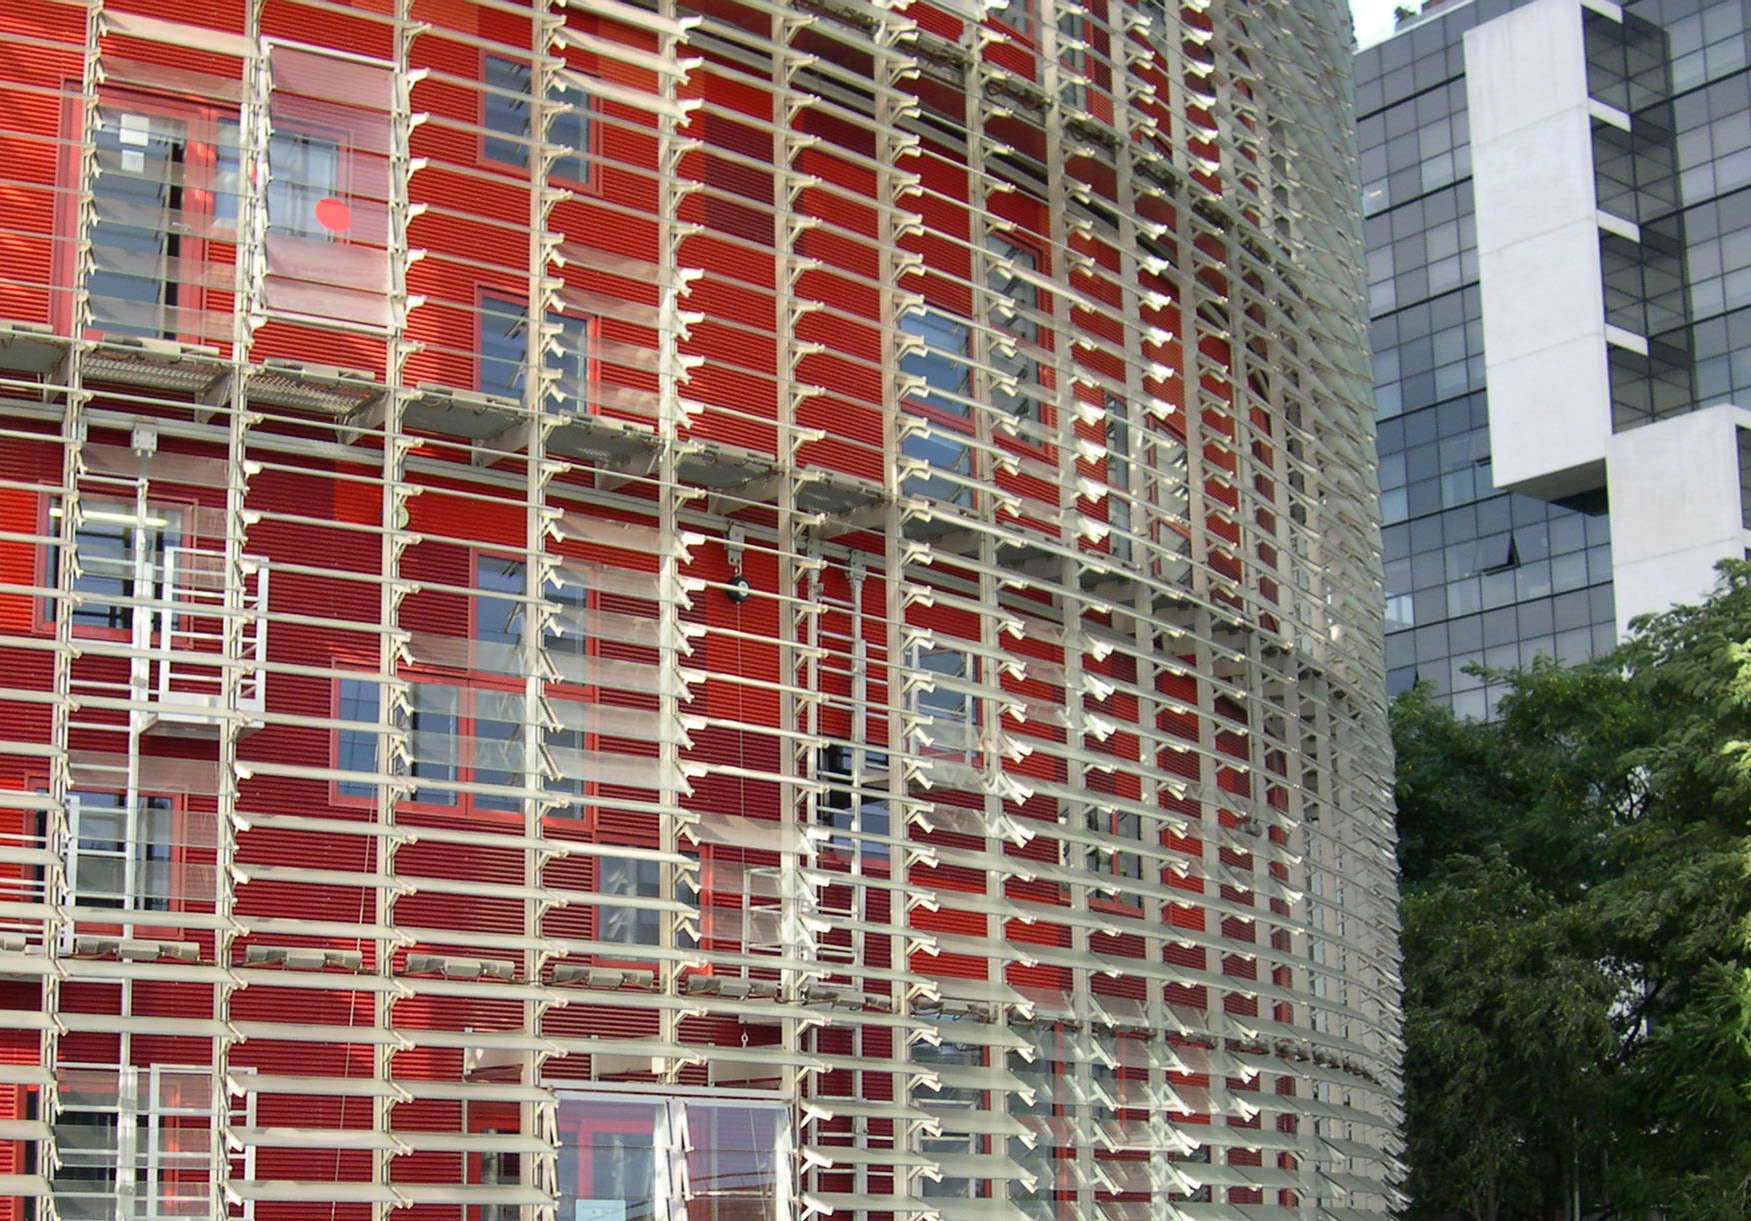 Light Installation further Vex additionally Retail Gallery likewise Double Skin Facade Agbar Tower Barcelona Jean Nouvel 226 additionally Timeline Of Processors. on electronic sensors